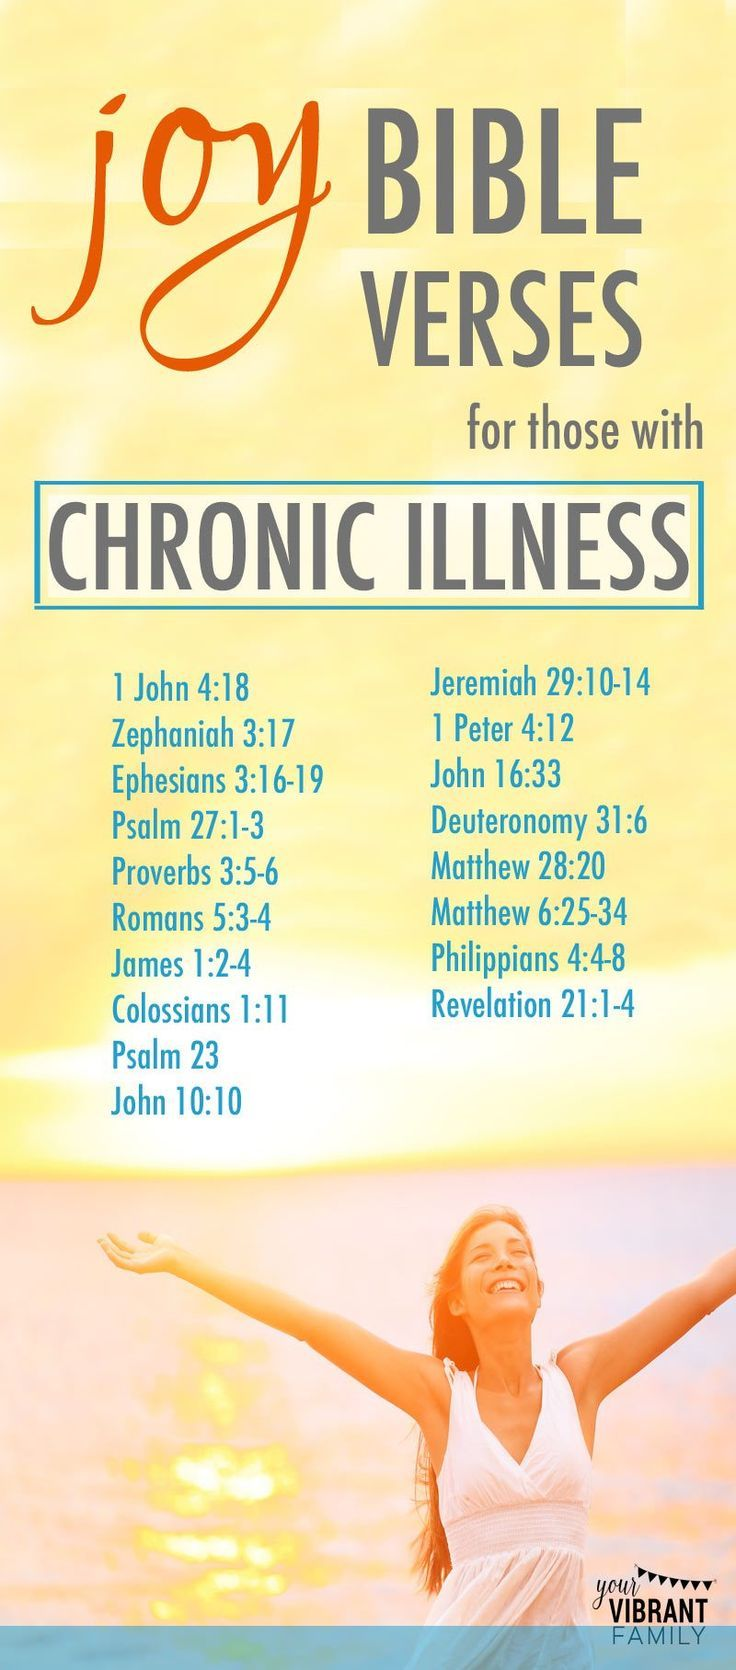 bible verses encouragement during illness | bible verse illness | bible verse sickness | bible verses healing | bible verses for healing | bible verses suffering | living chronic illness | bible verses about joy | scriptures on joy | bible verses encourag